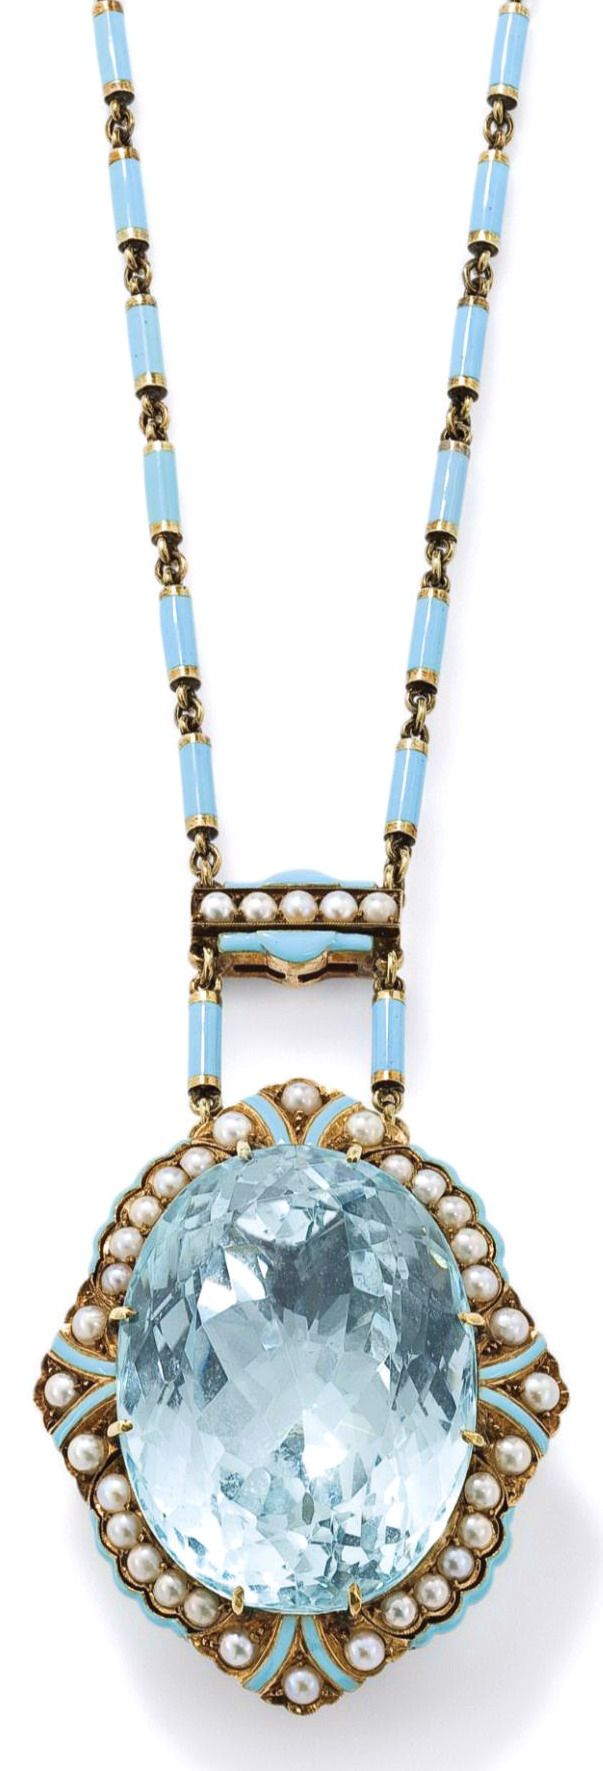 An aquamarine and pearl necklace   The oval mixed-cut aquamarine, weighing approximately 65.00 to 70.00 carats, claw-set within a scalloped half-pearl and light blue enamel frame to a similarly set surmount and suspended from a similar blue enamel baton-link chain, necklace length 46 cm, pendant length 5.7 cm.